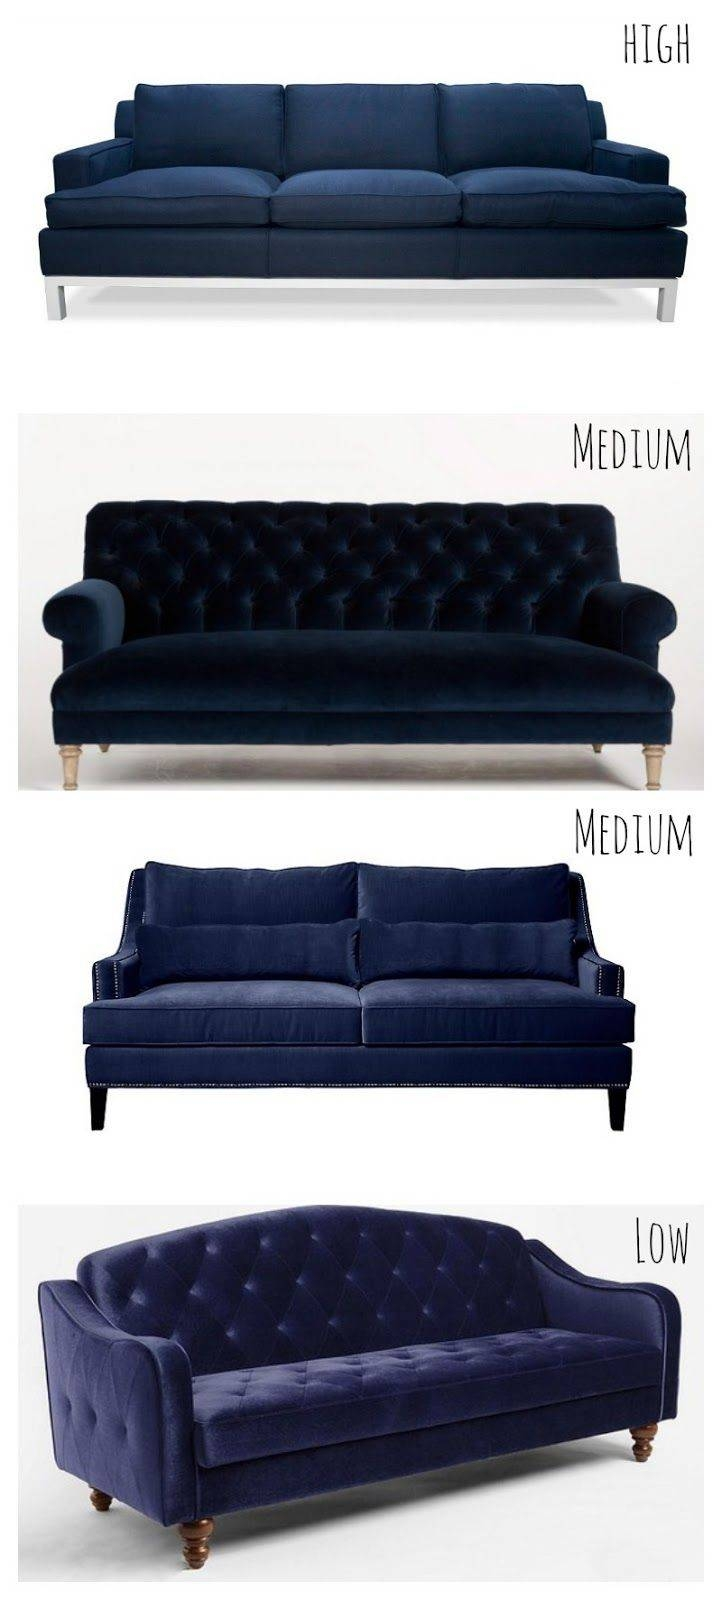 Best 25+ Navy Blue Sofa Ideas On Pinterest | Navy Blue Couches within Dark Blue Sofas (Image 3 of 30)